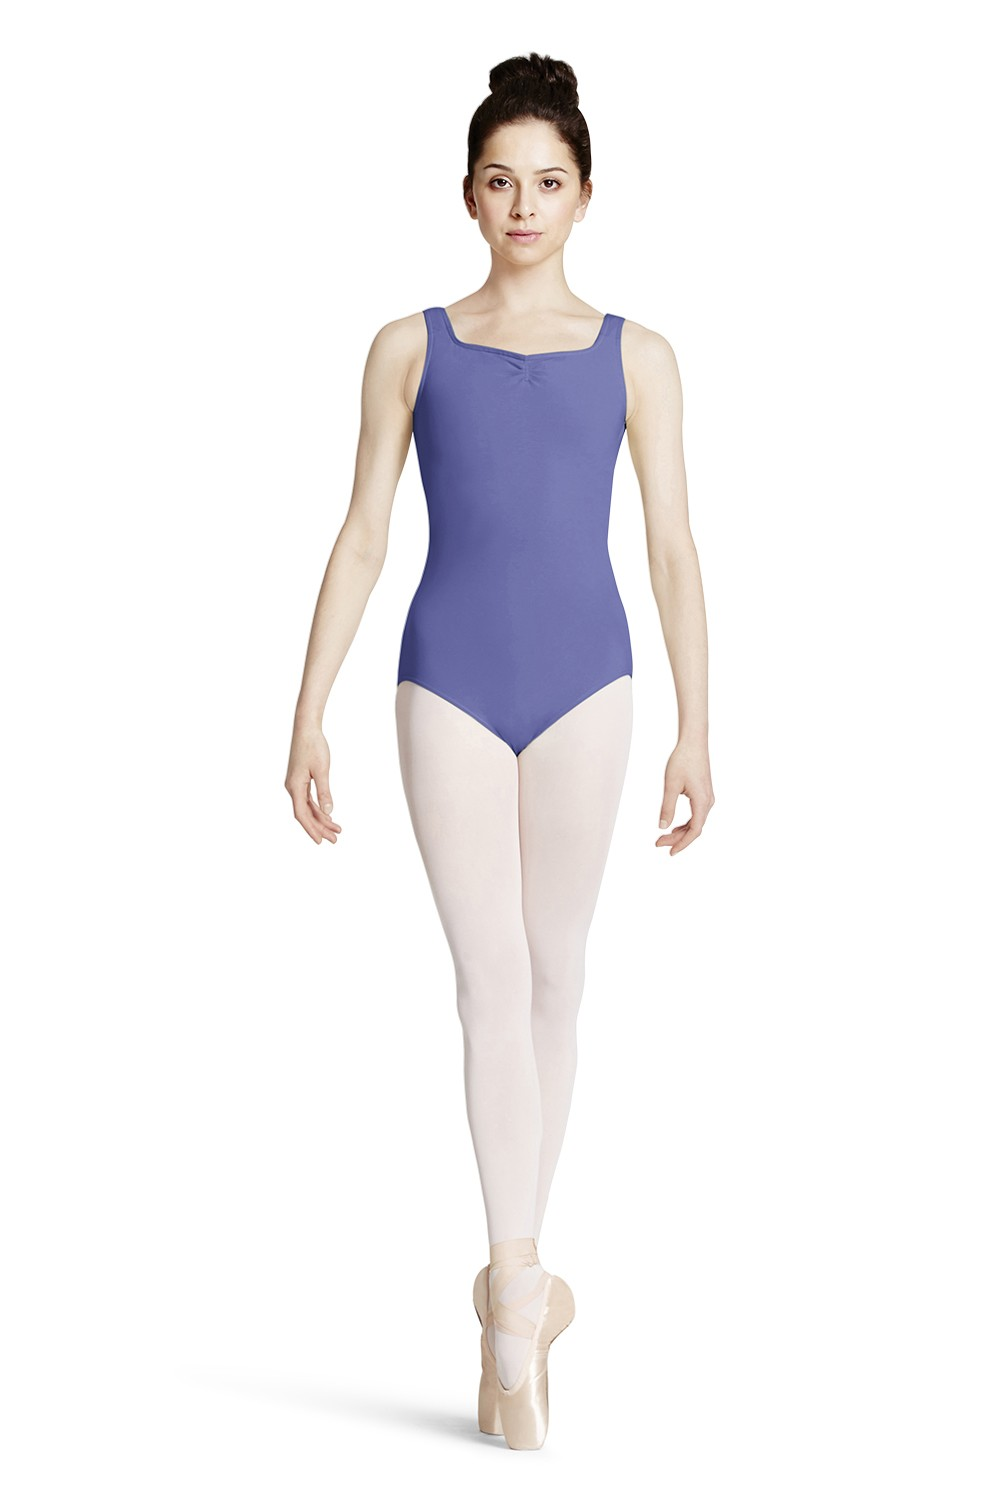 Tank Leotard W/ Inner Support Cups Women's Dance Leotards